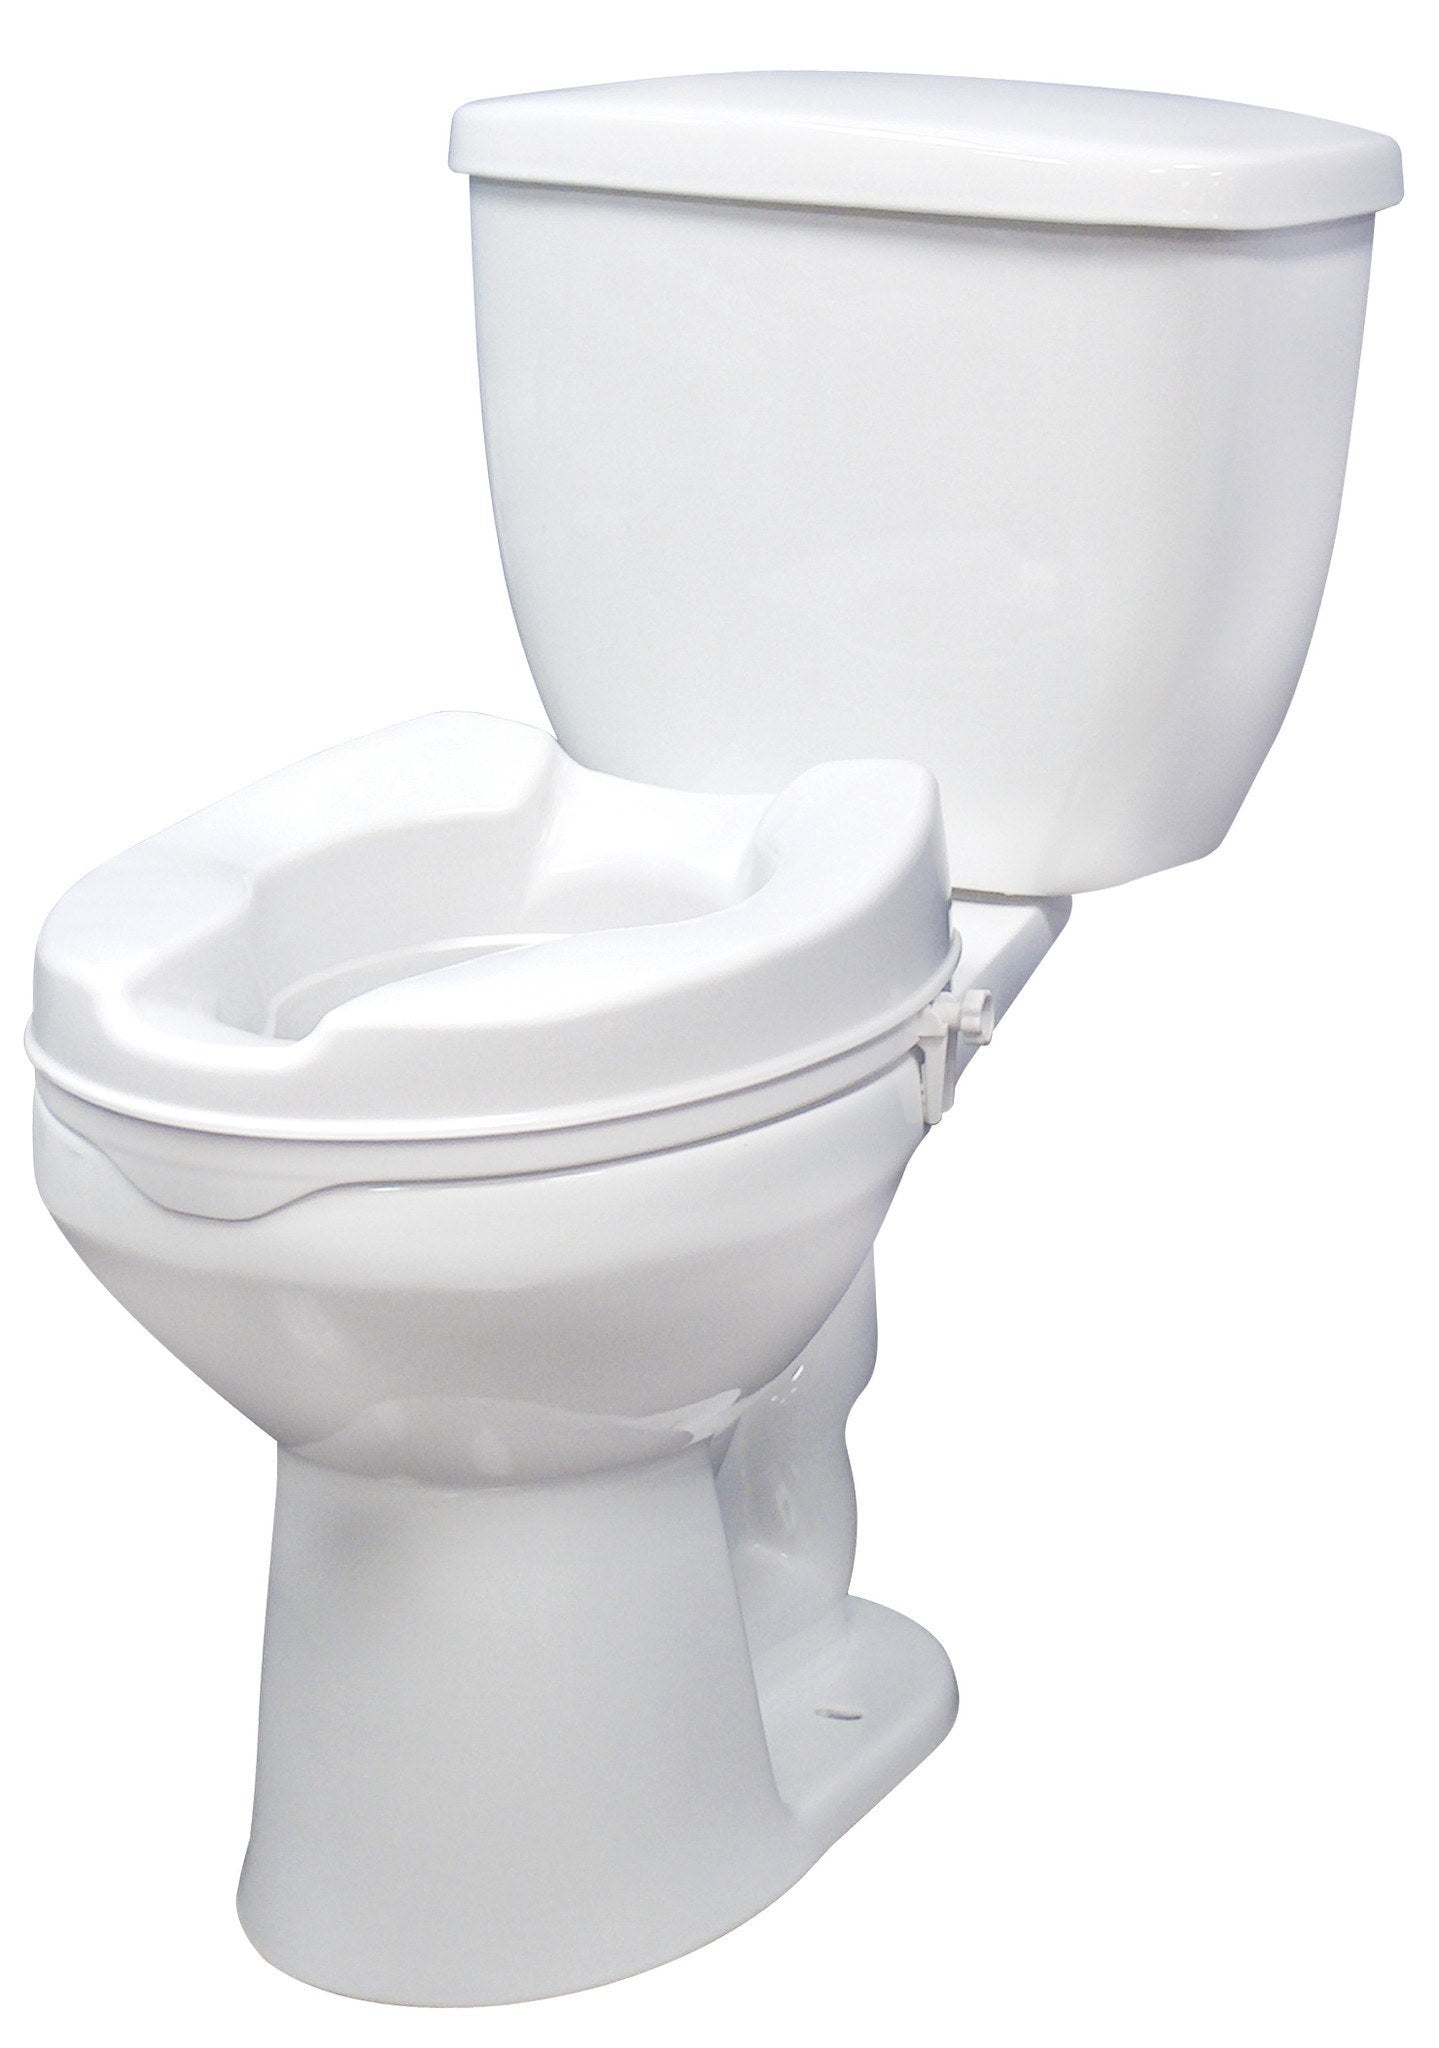 Toilet Seat Without Lid 12063Raised Toilet Seat with without Lid